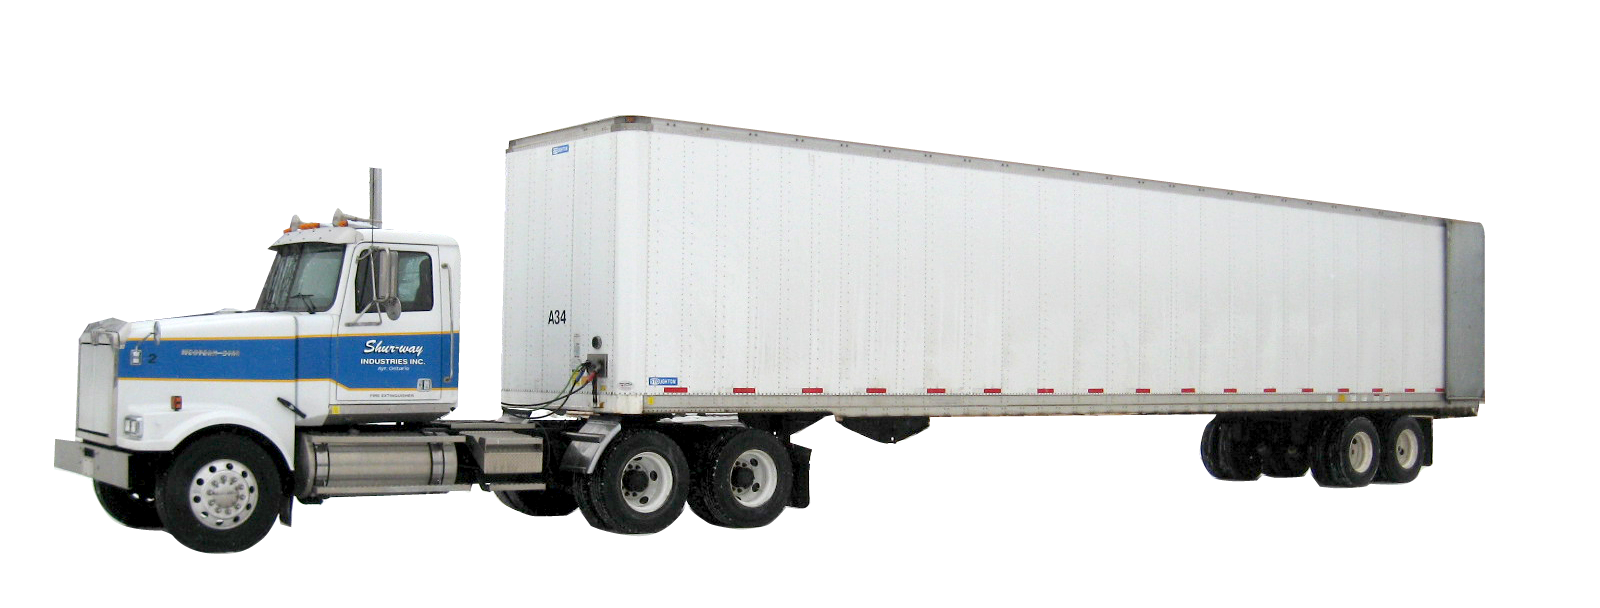 Truck PNG Image Trucks, Png images, Png